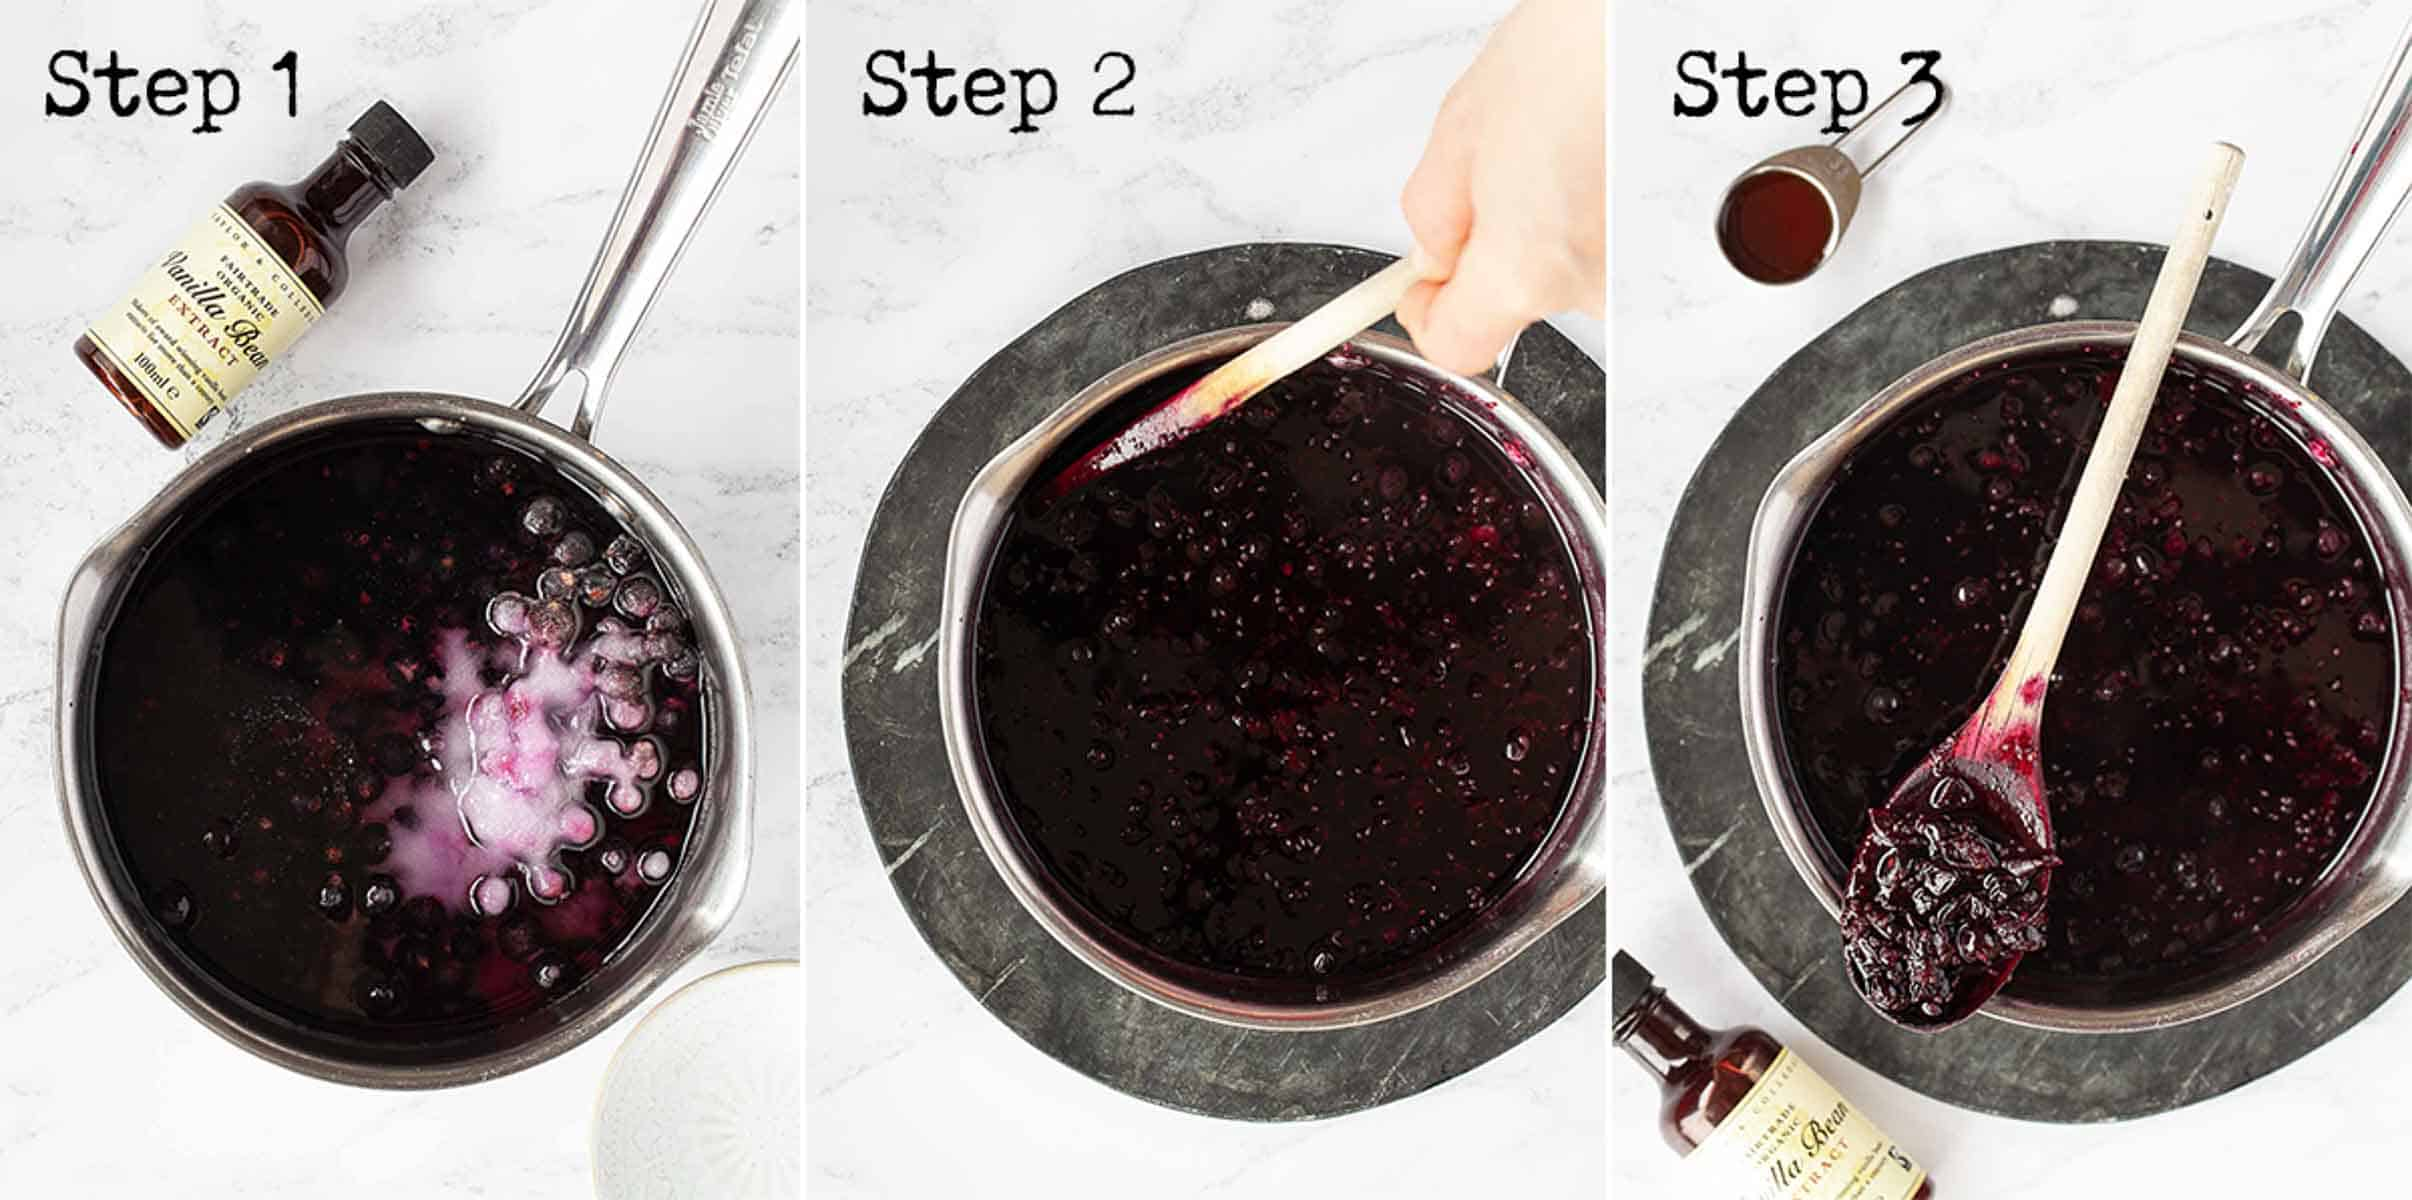 Step by step images to making fruit syrup in a saucepan